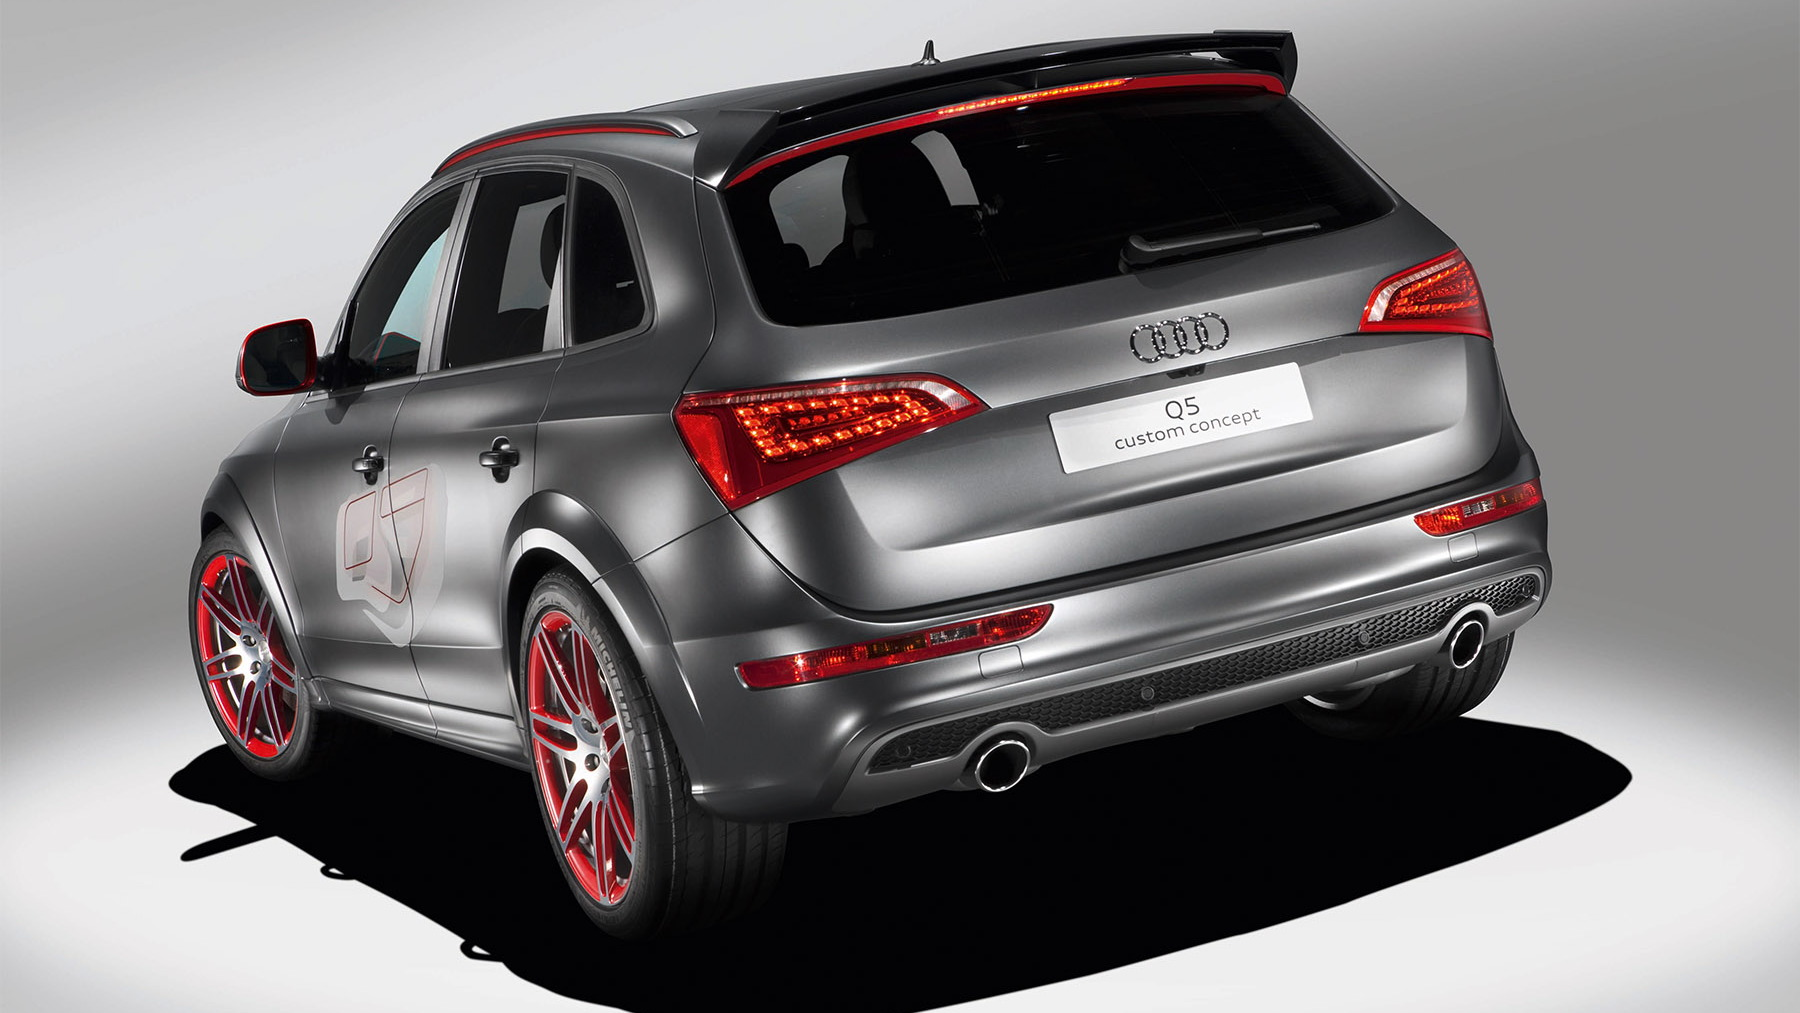 2009 audi q5 worthersee concept 002